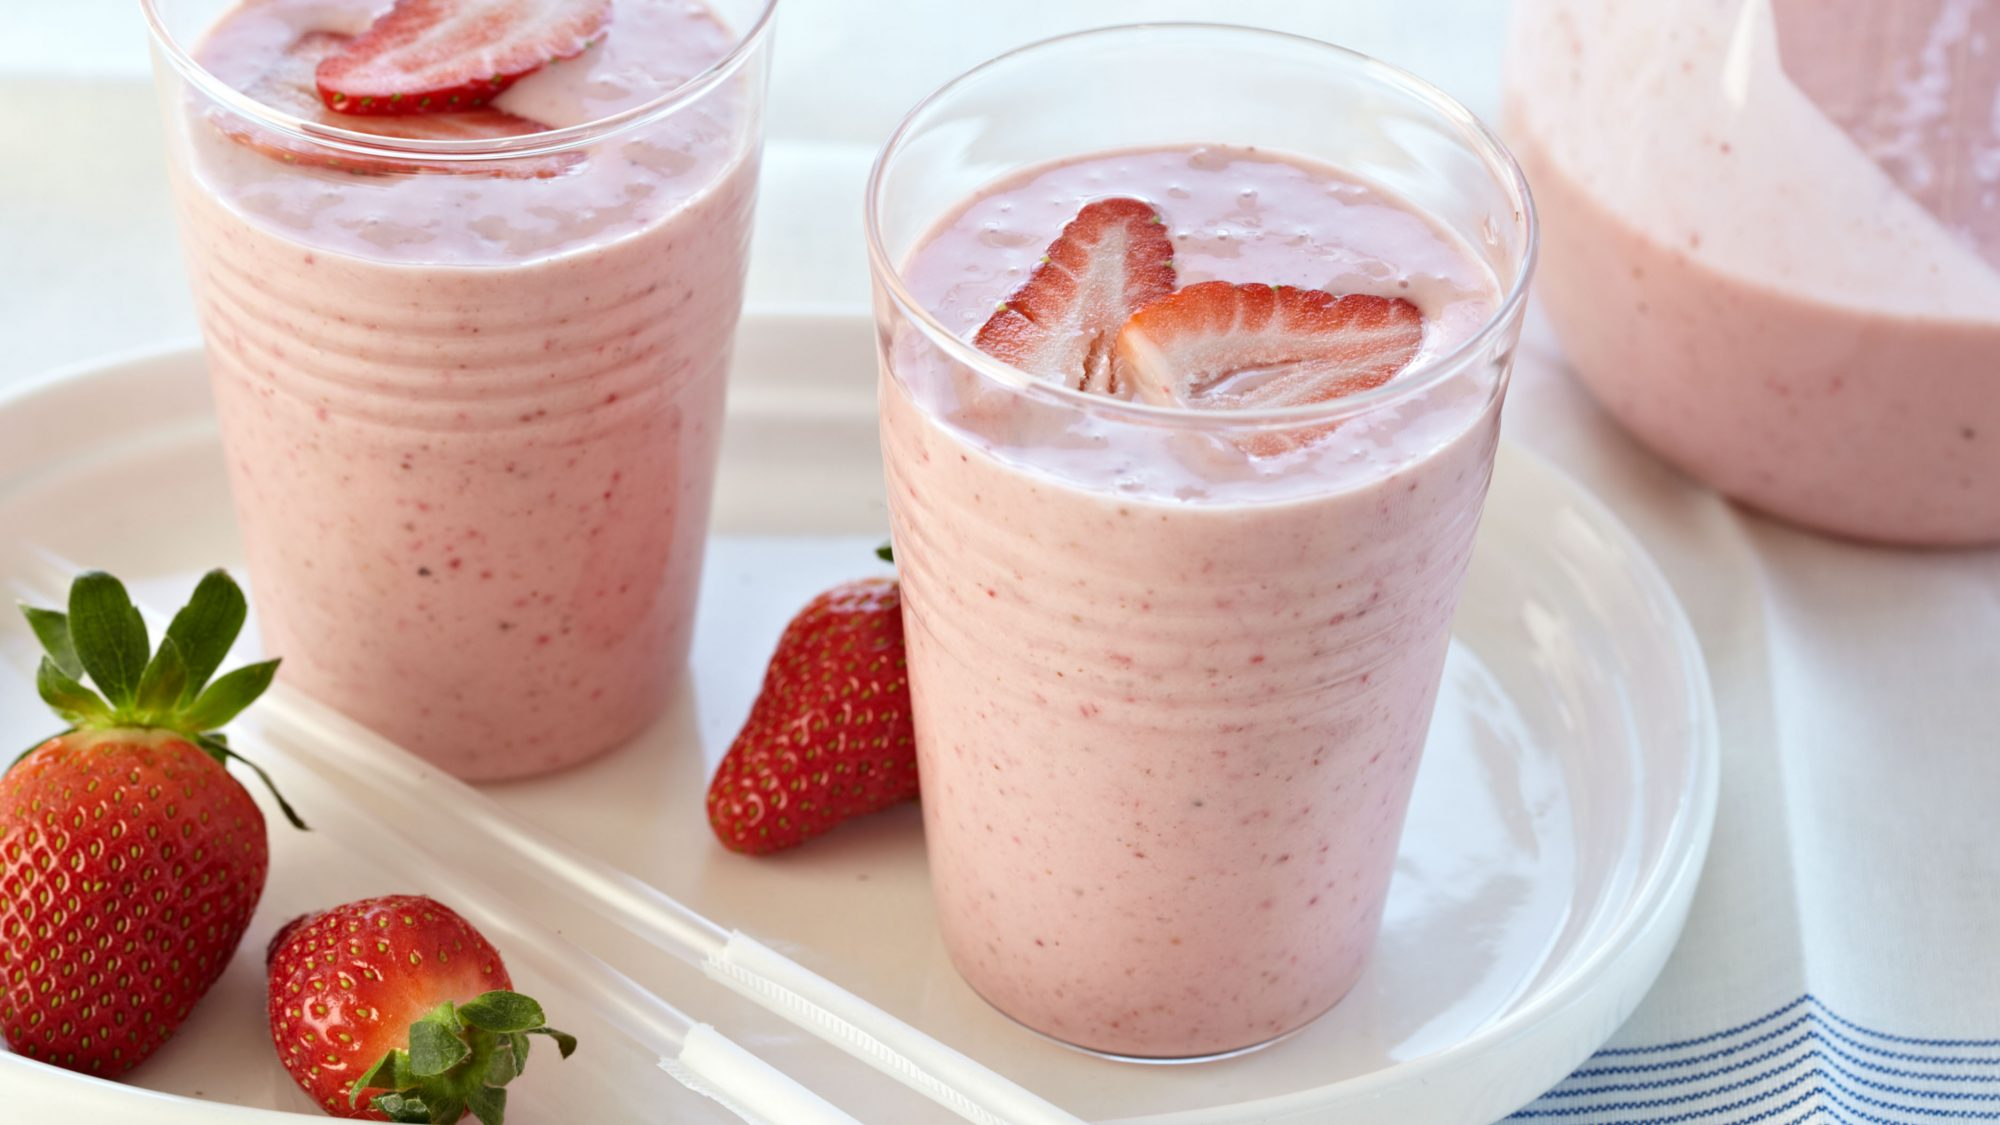 201012-FT-strawberry-banana-smoothie.jpg